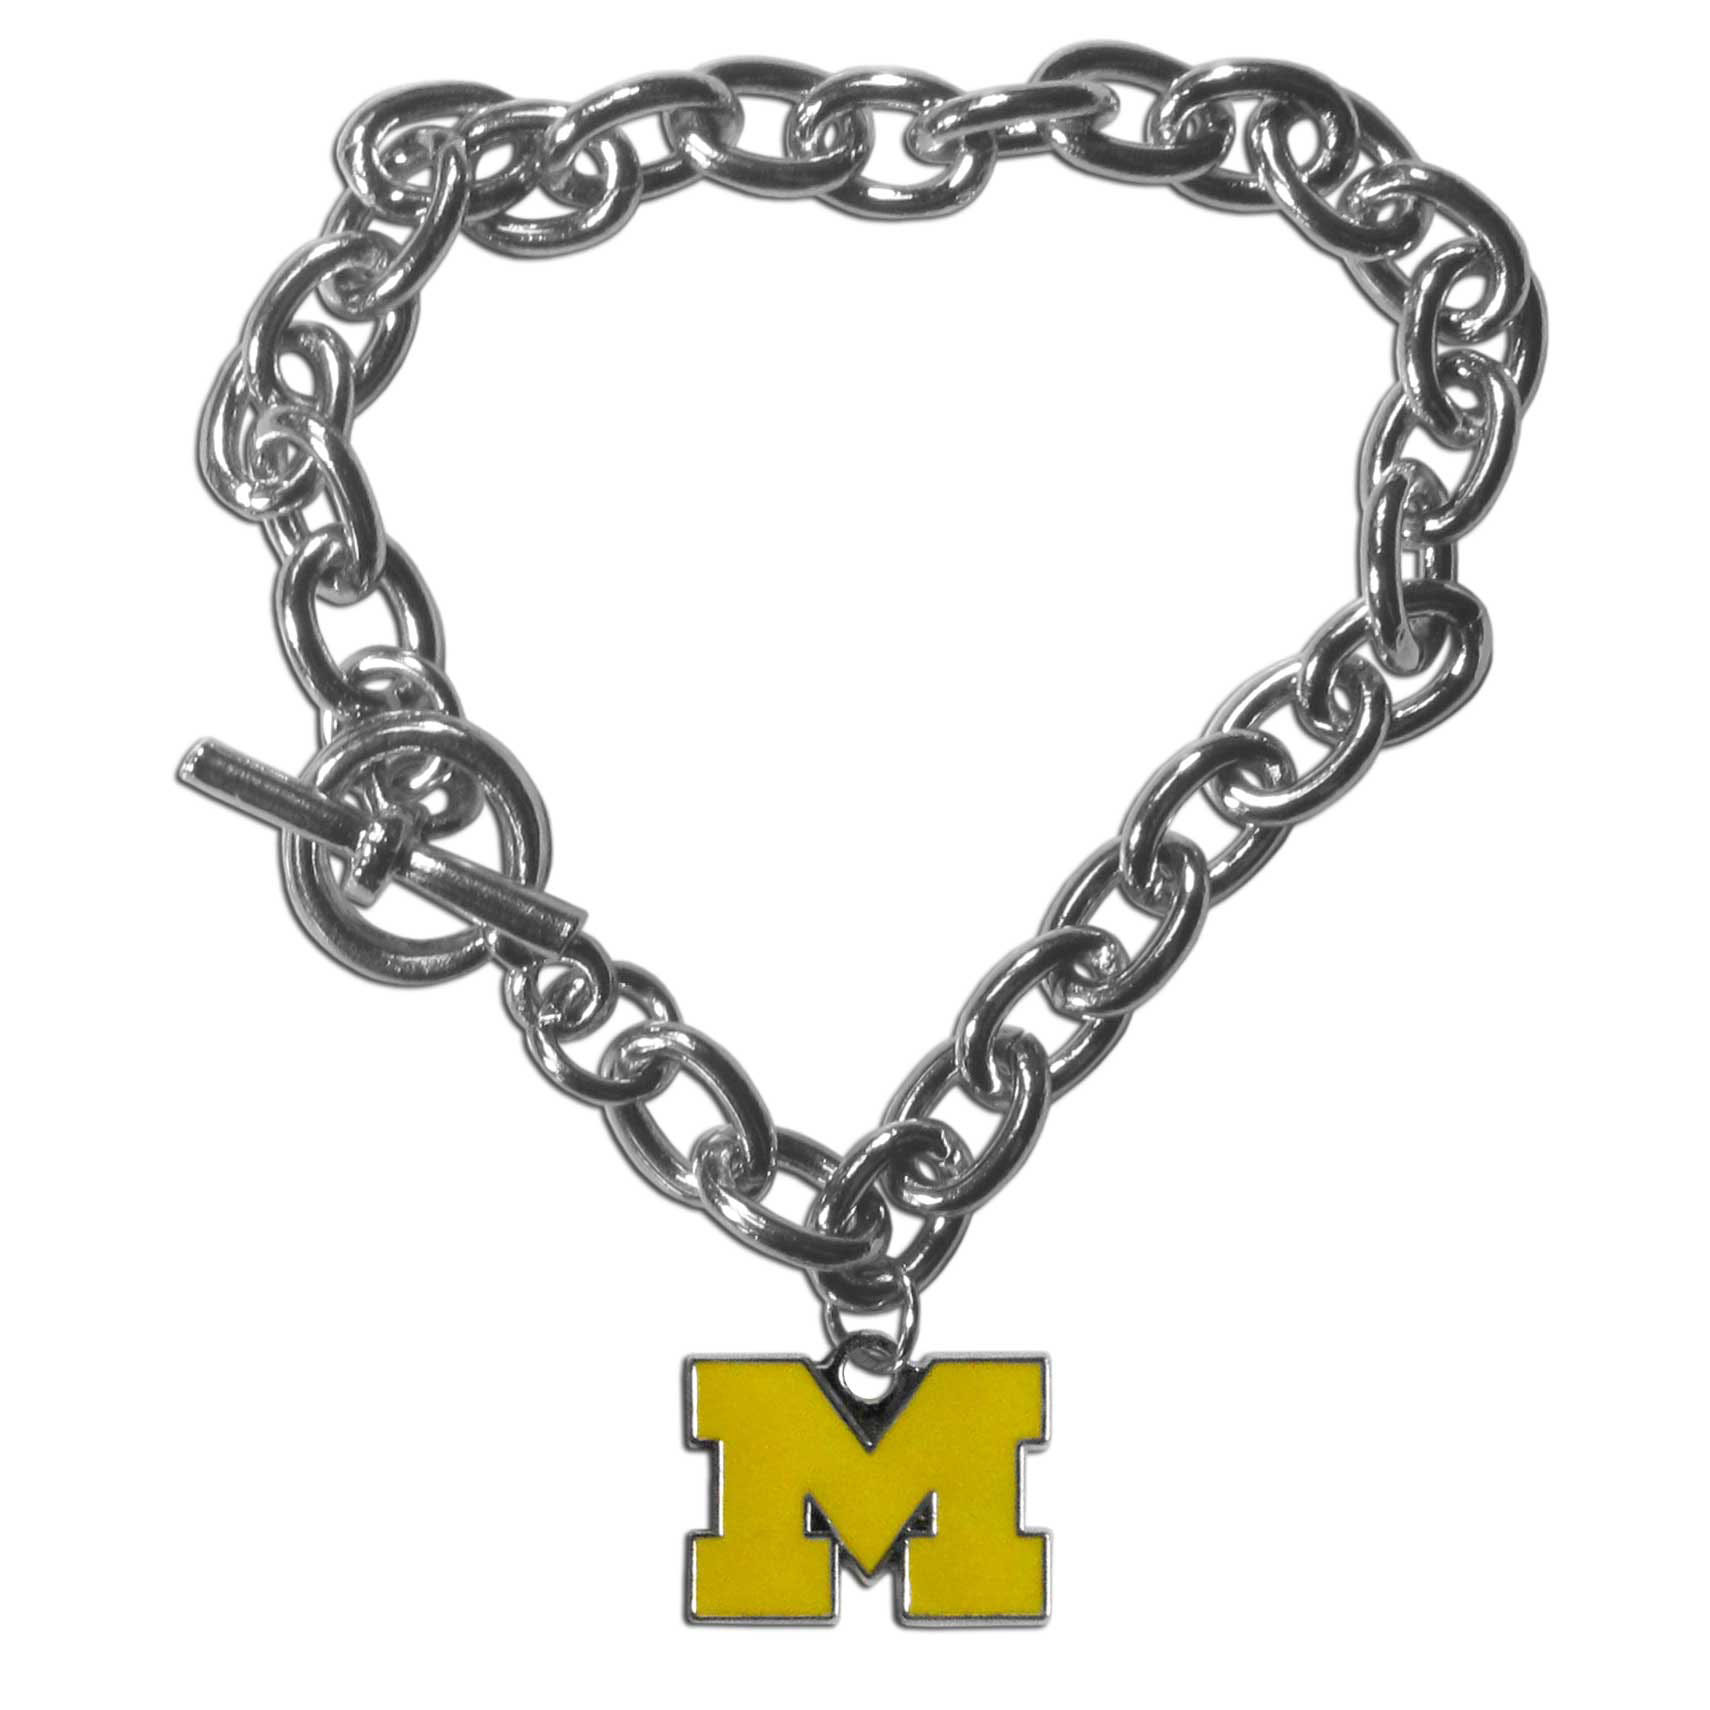 Michigan Wolverines Charm Chain Bracelet - Our classic single charm bracelet is a great way to show off your team pride! The 7.5 inch large link chain features a high polish Michigan Wolverines charm and features a toggle clasp which makes it super easy to take on and off.